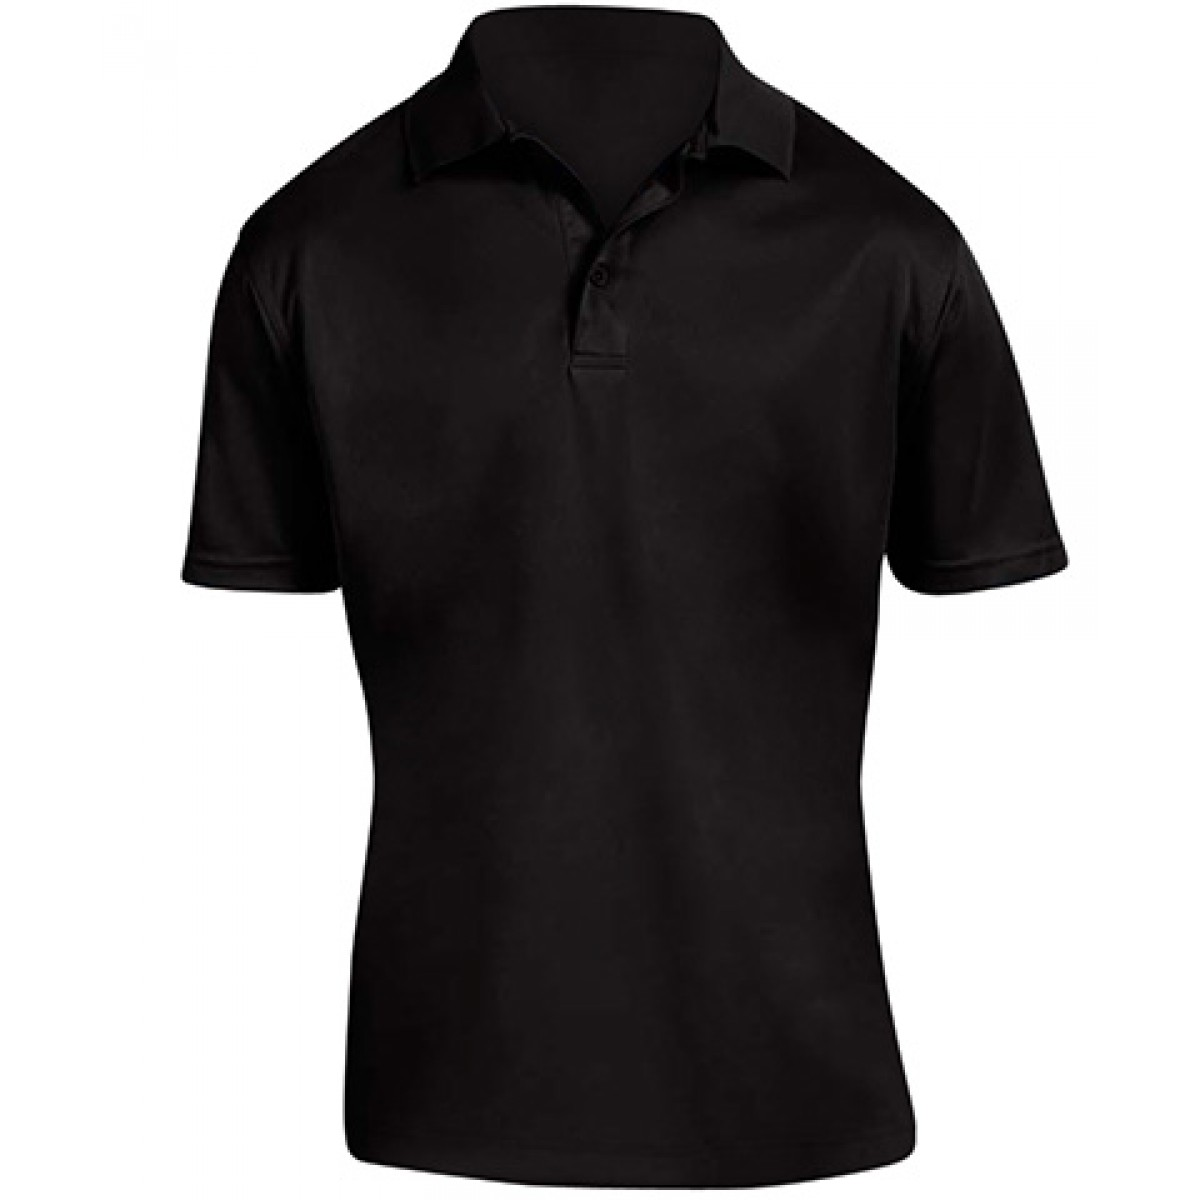 Men's 4 oz. Polytech Polo-Black-XL